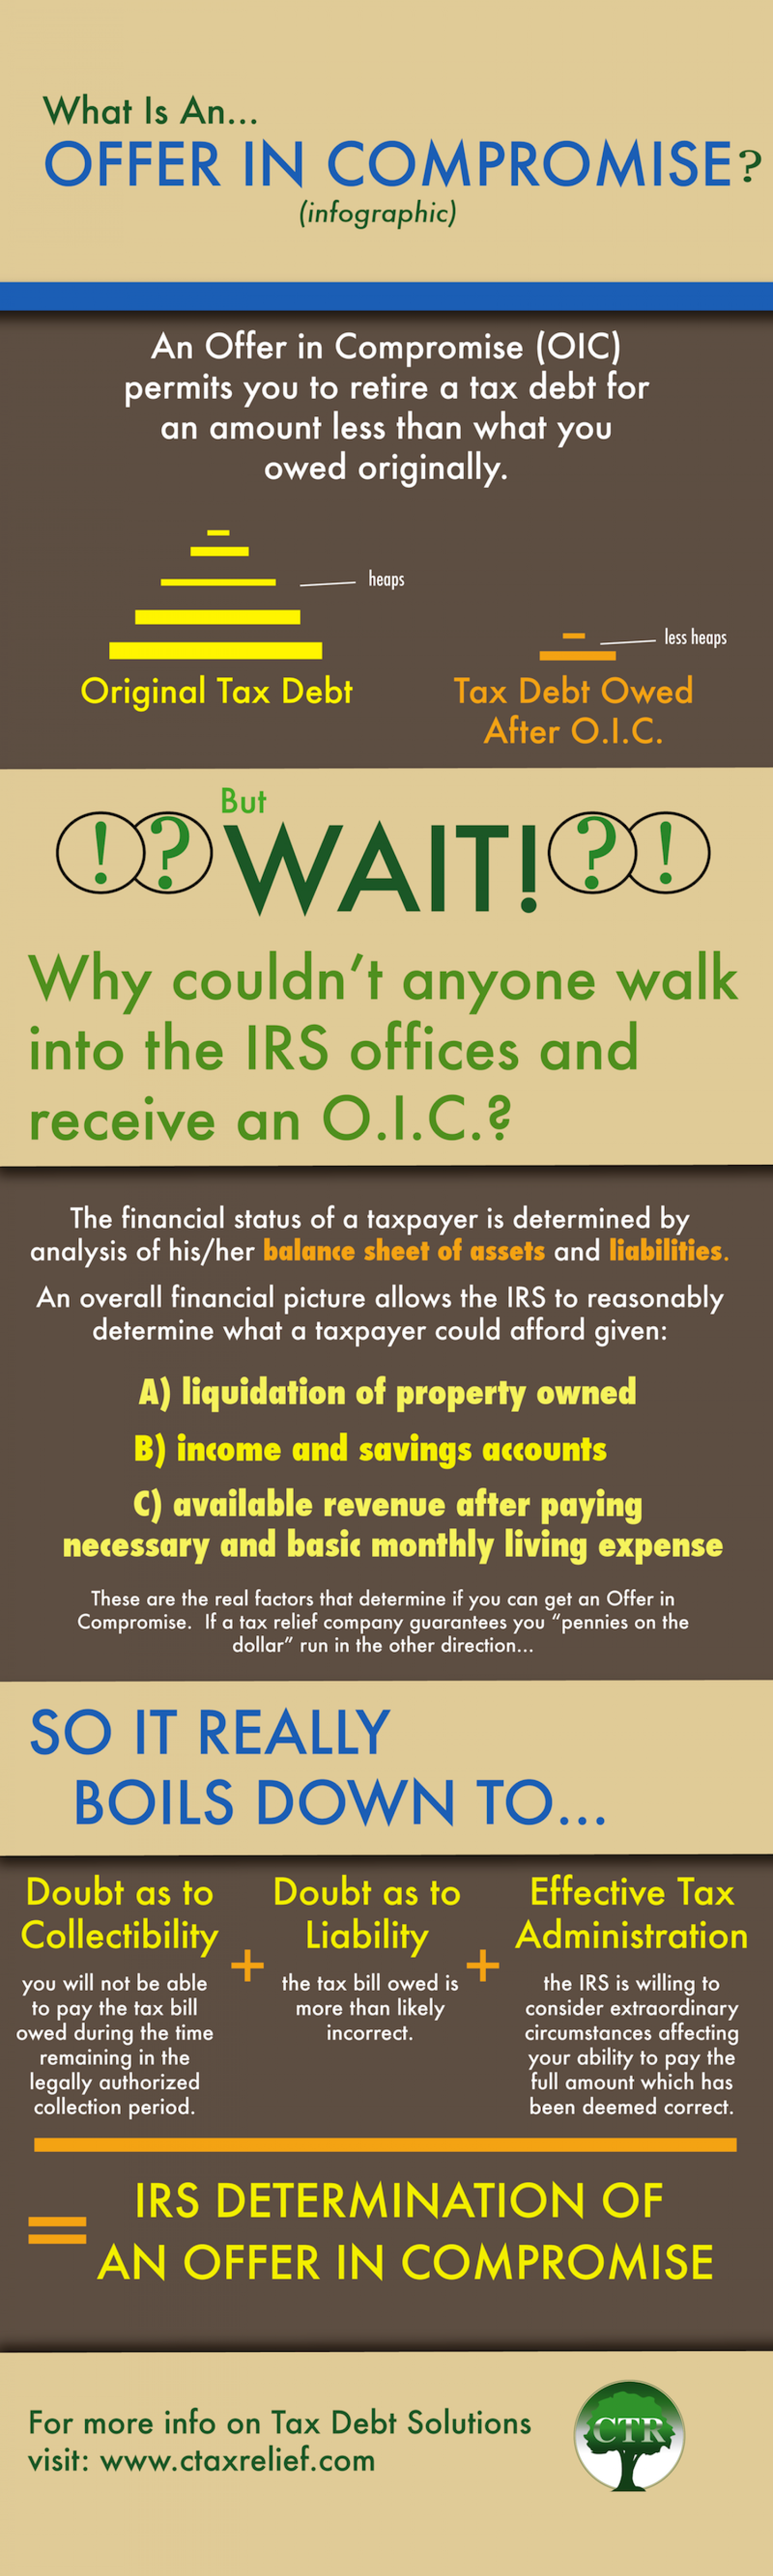 WHAT IS AN OFFER IN COMPROMISE? Infographic